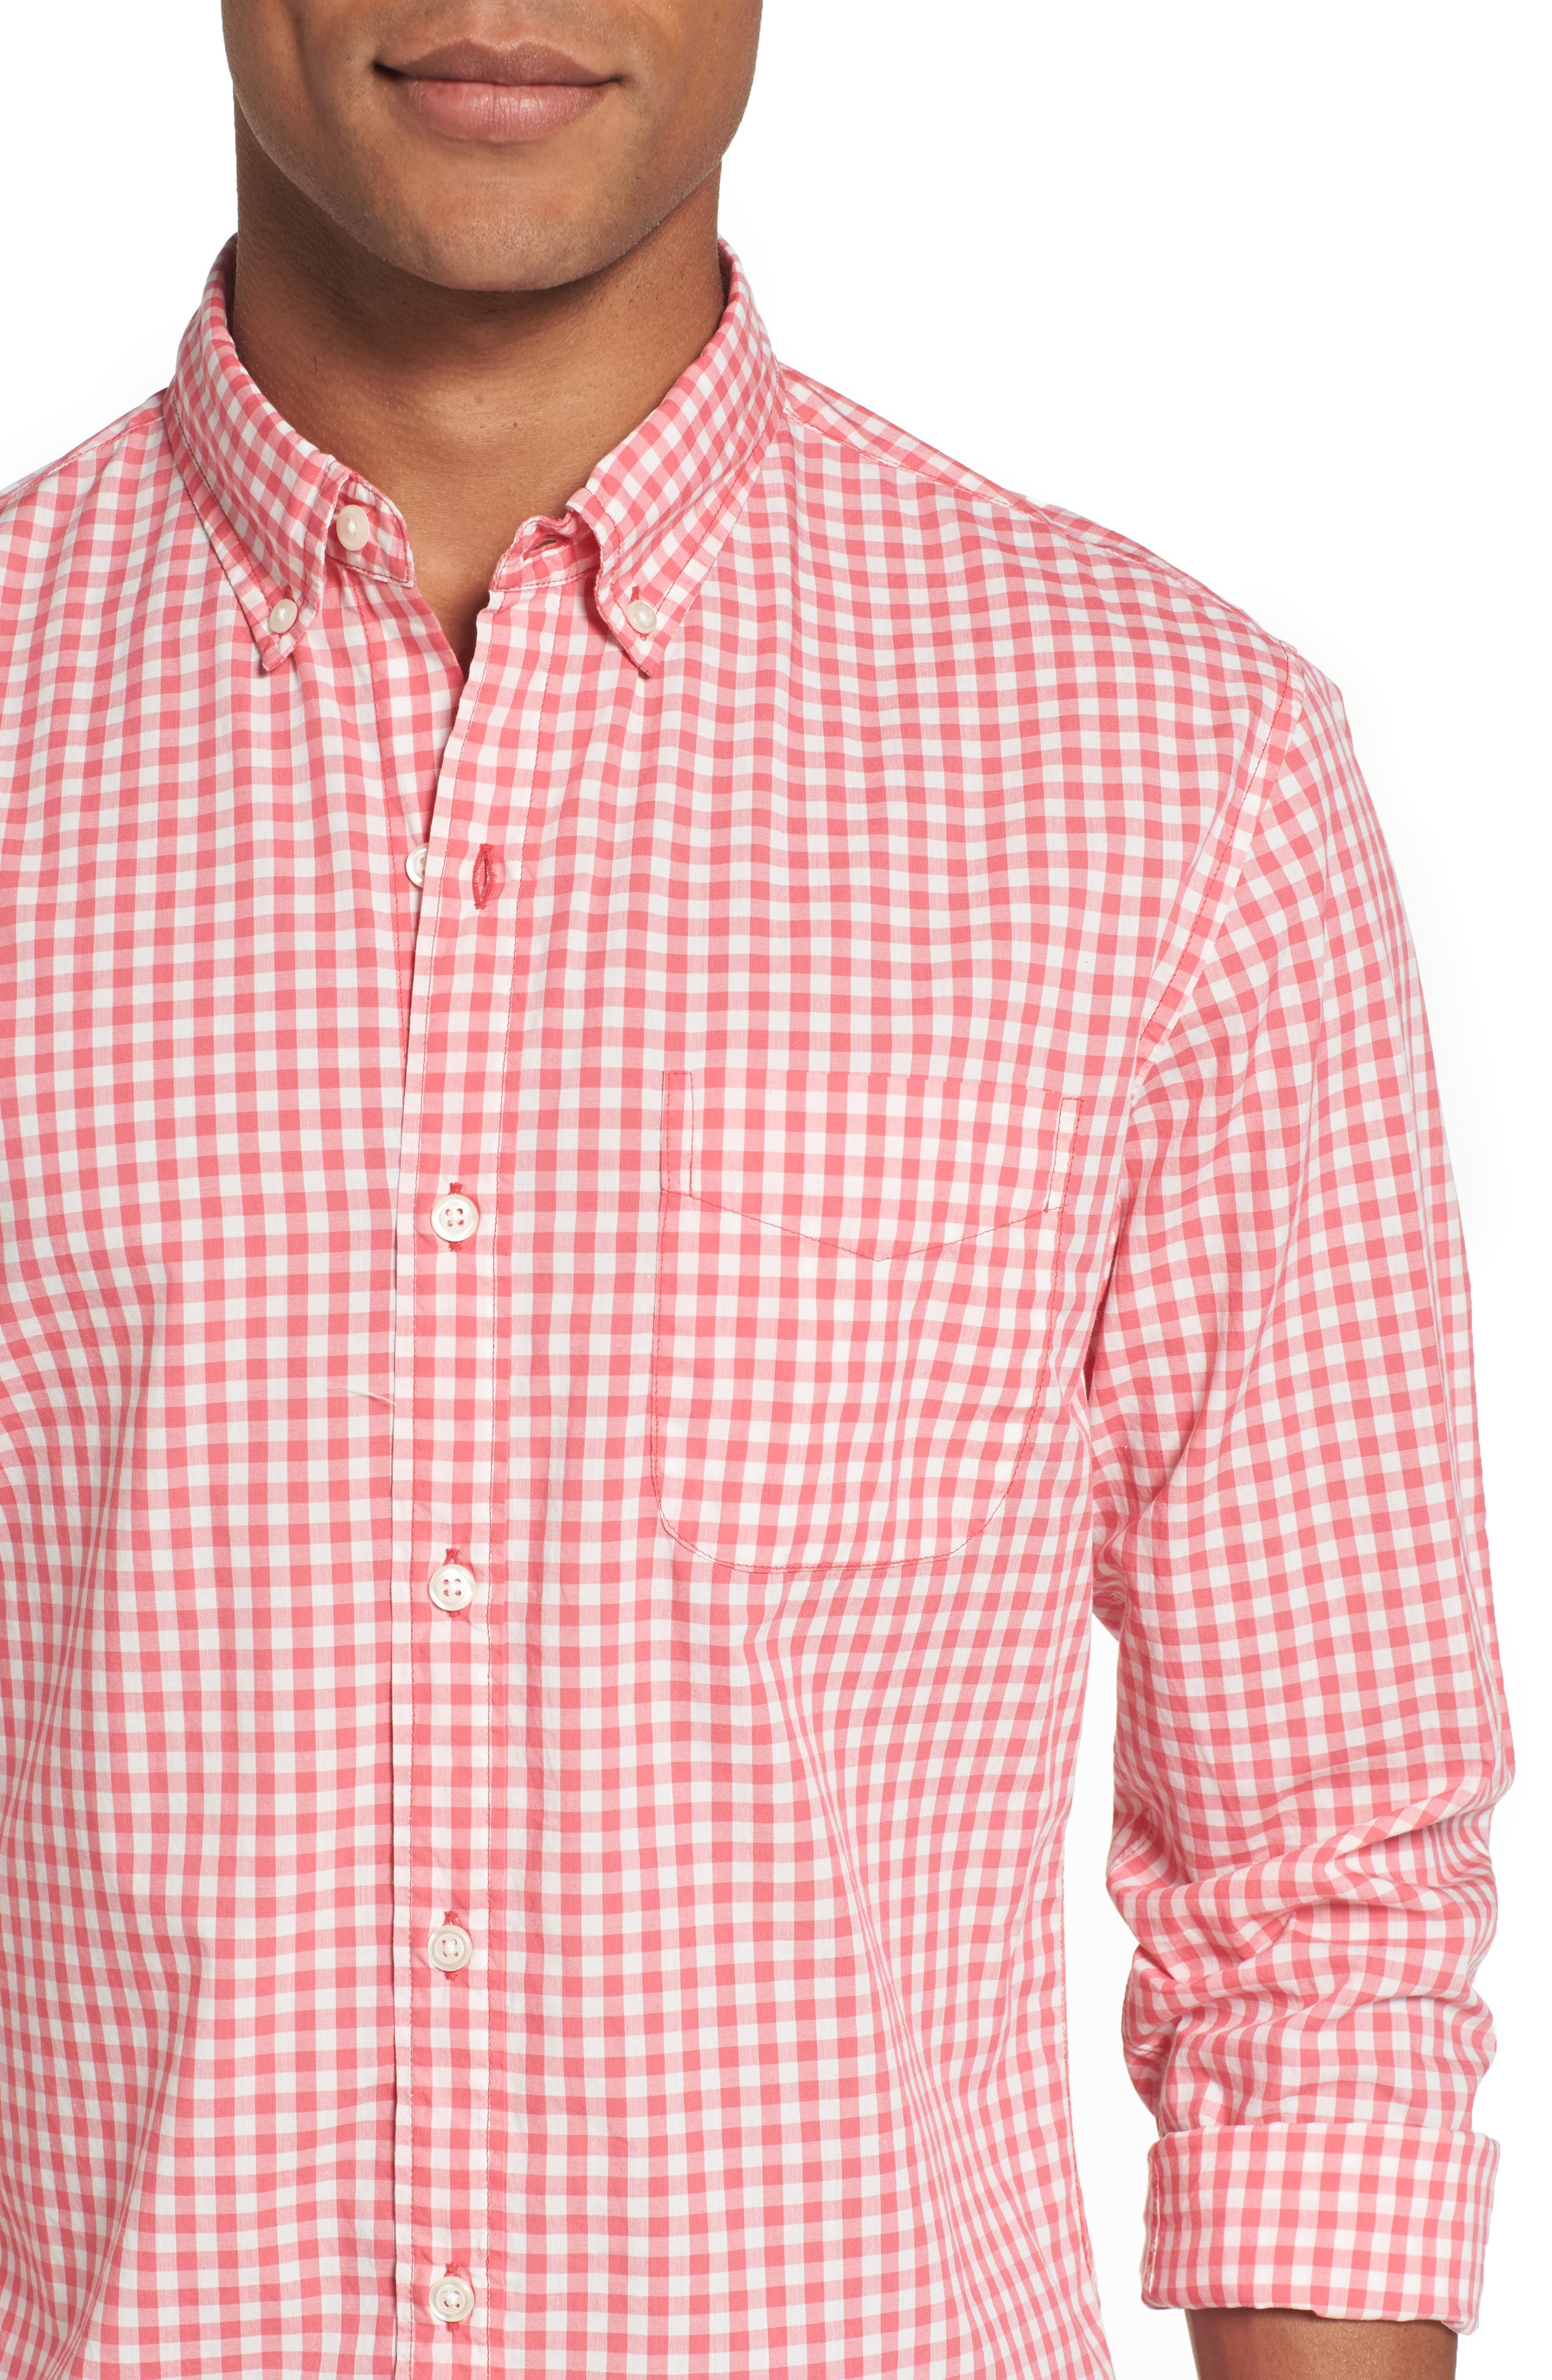 Slim Fit Summerweight Check Sport Shirt,                             Alternate thumbnail 4, color,                             Coral Ribbon Gingham